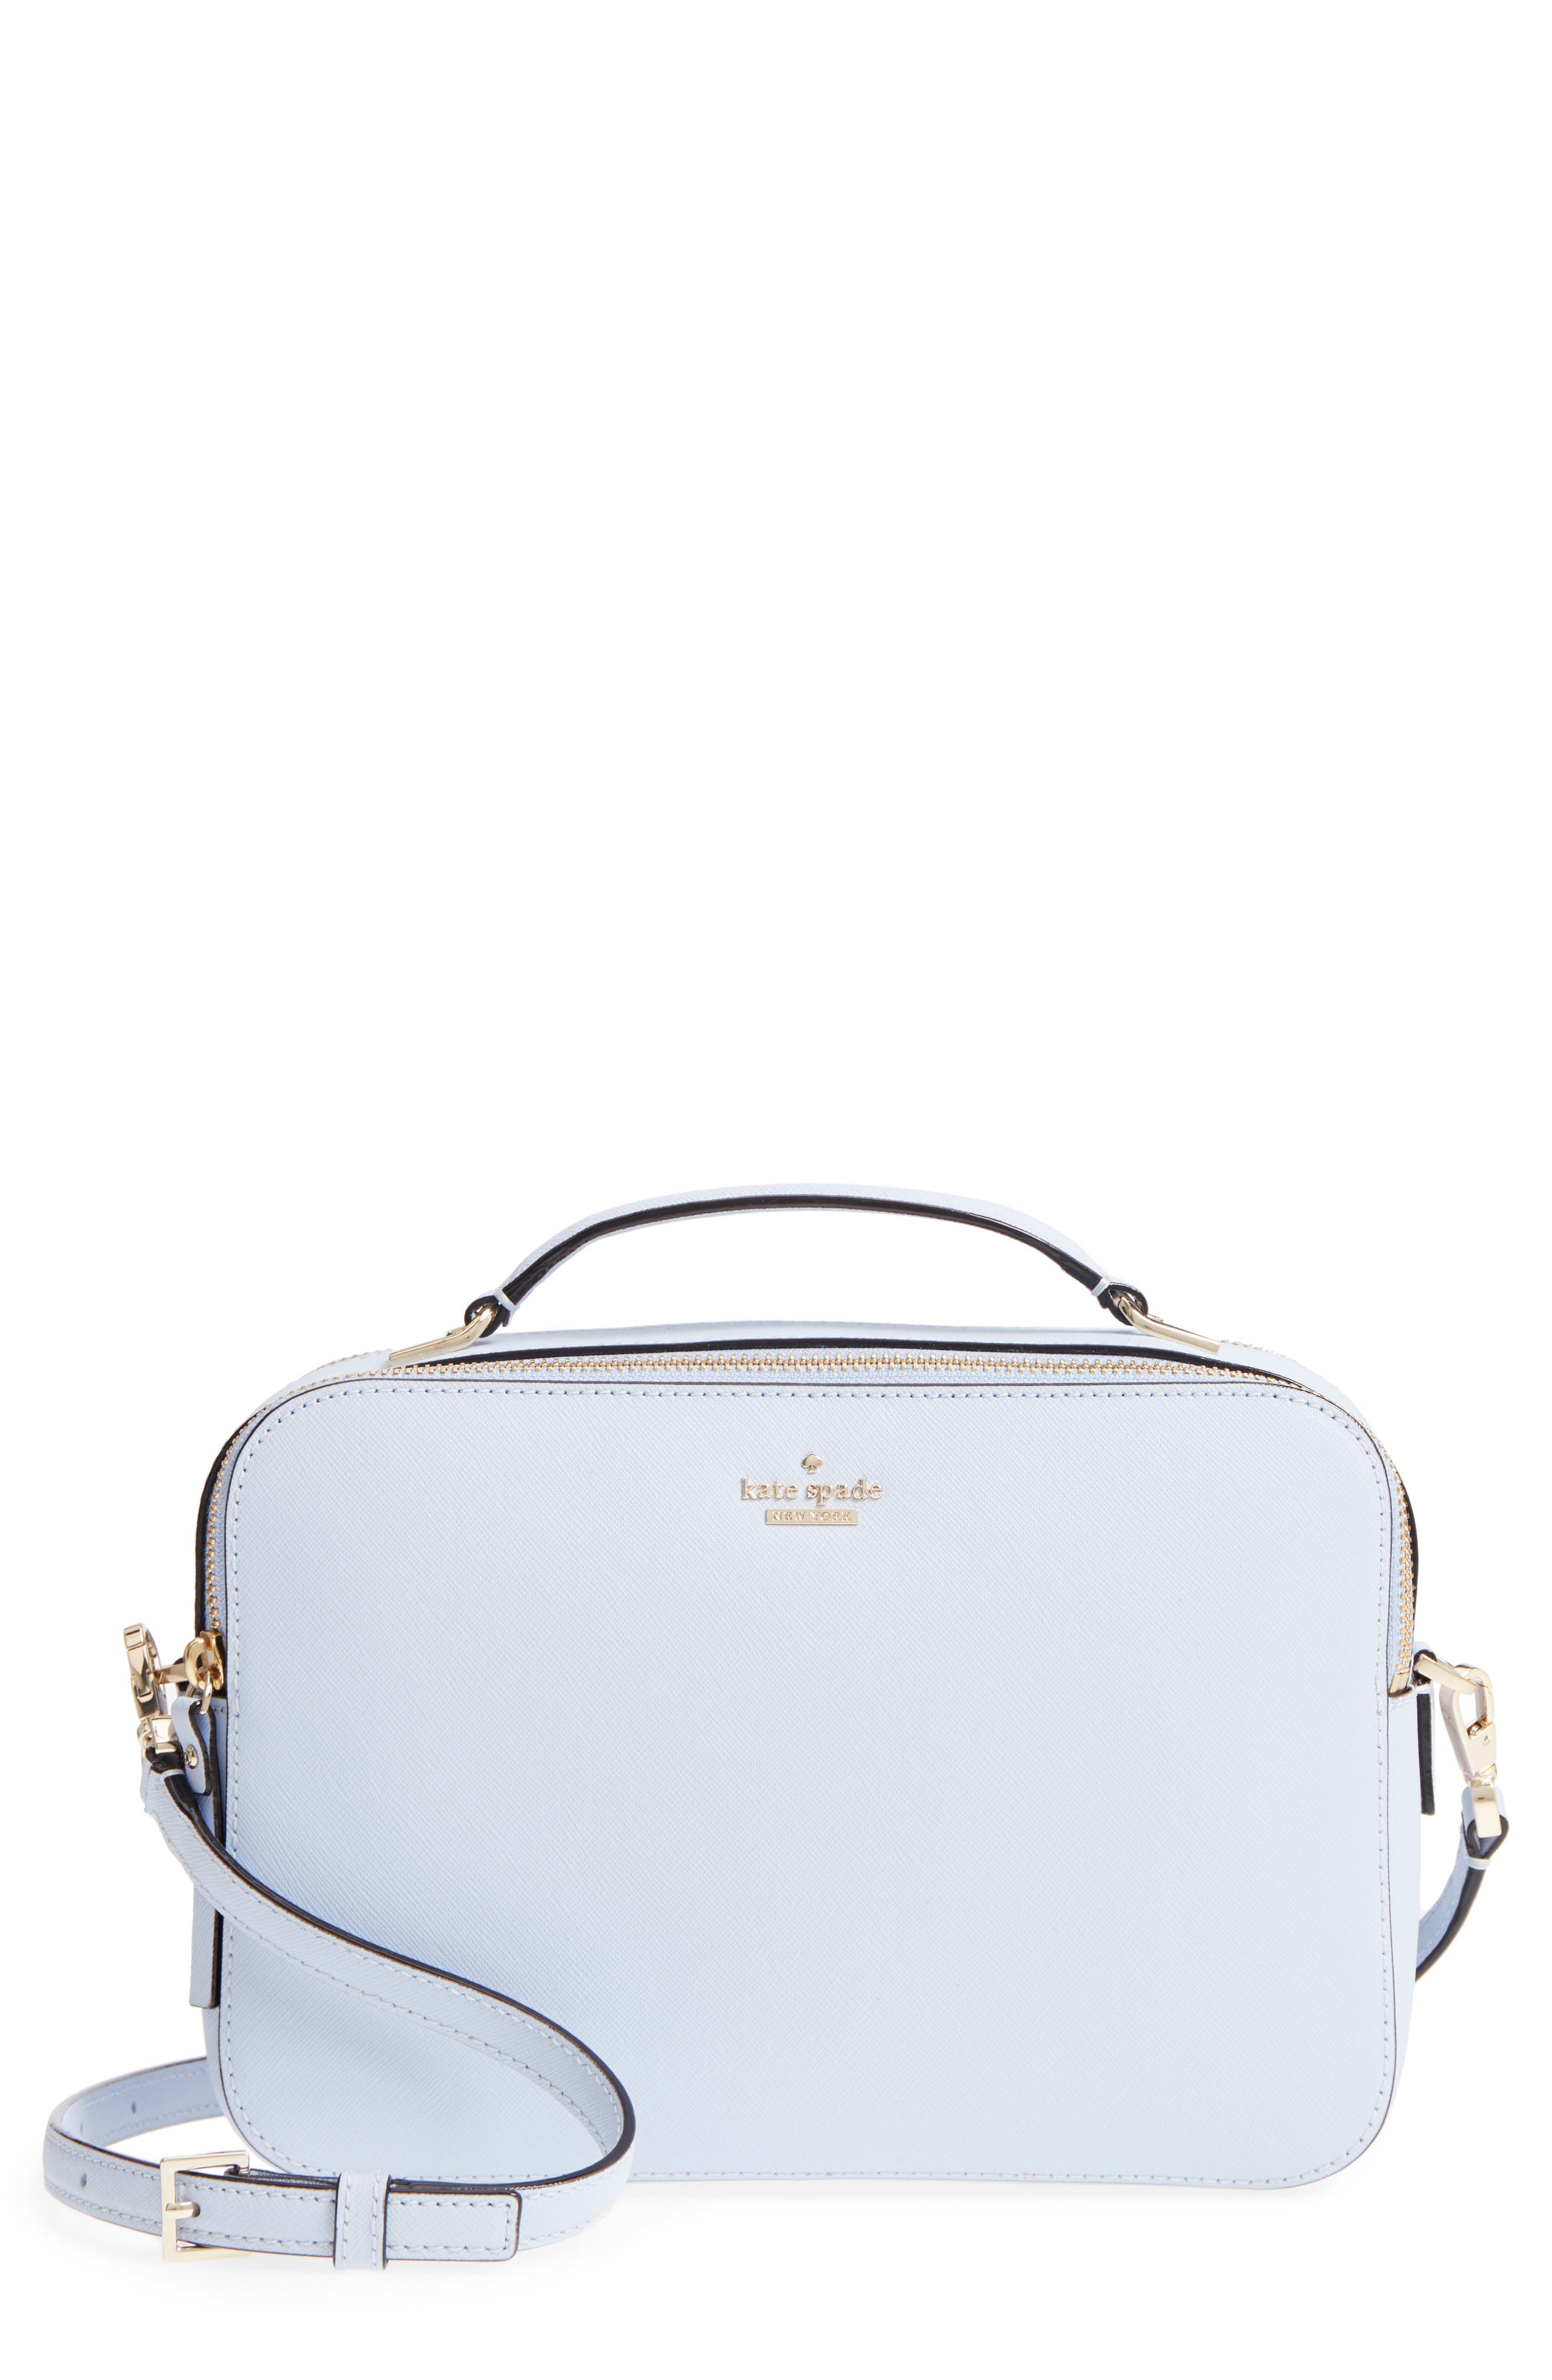 kate spade new york cameron street – large juliet leather crossbody bag